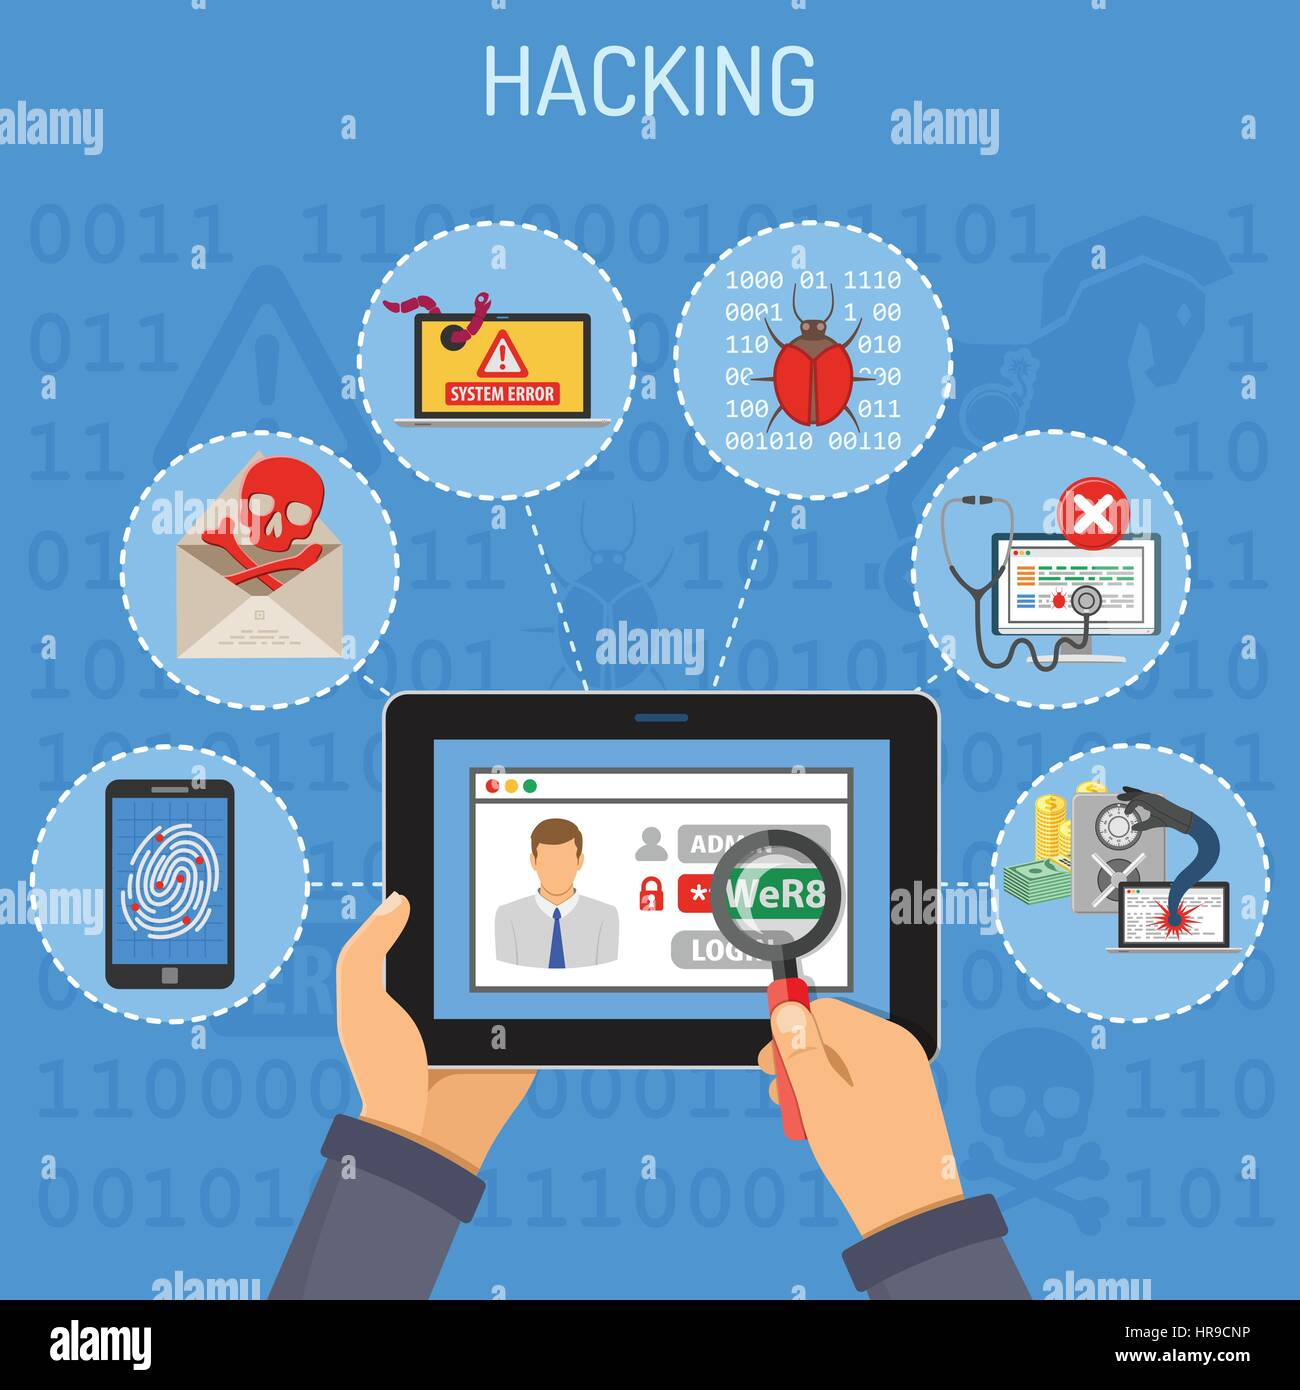 Internet Security and Hacking concept - Stock Image